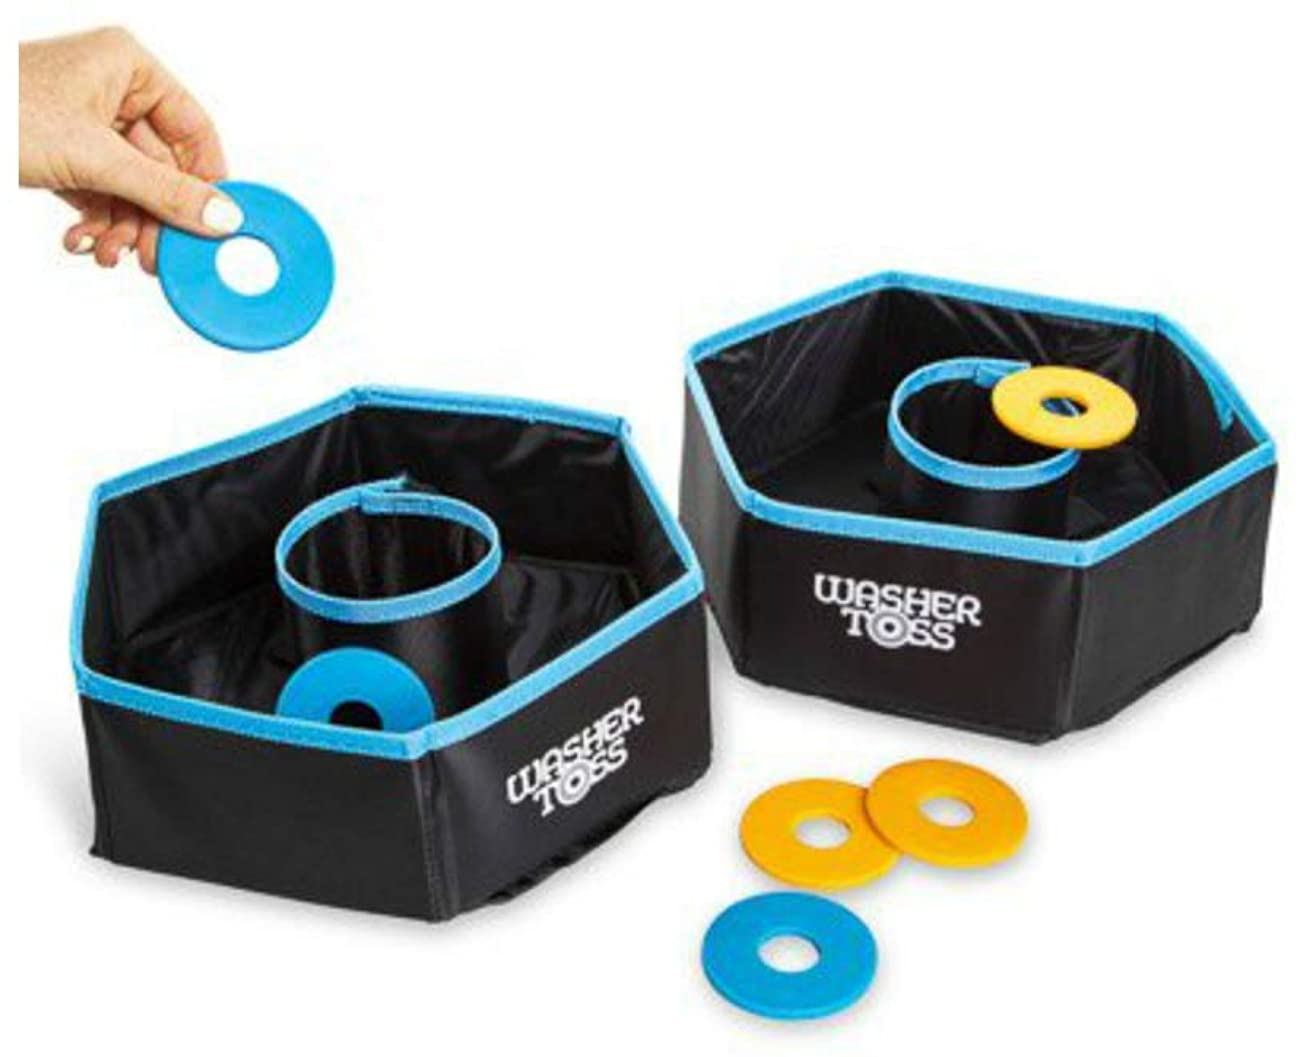 Washer Throw Game Cornhole Board Game Ring Toss Traveling Game Picnic Summer Beach Tailgate Family Kids Game